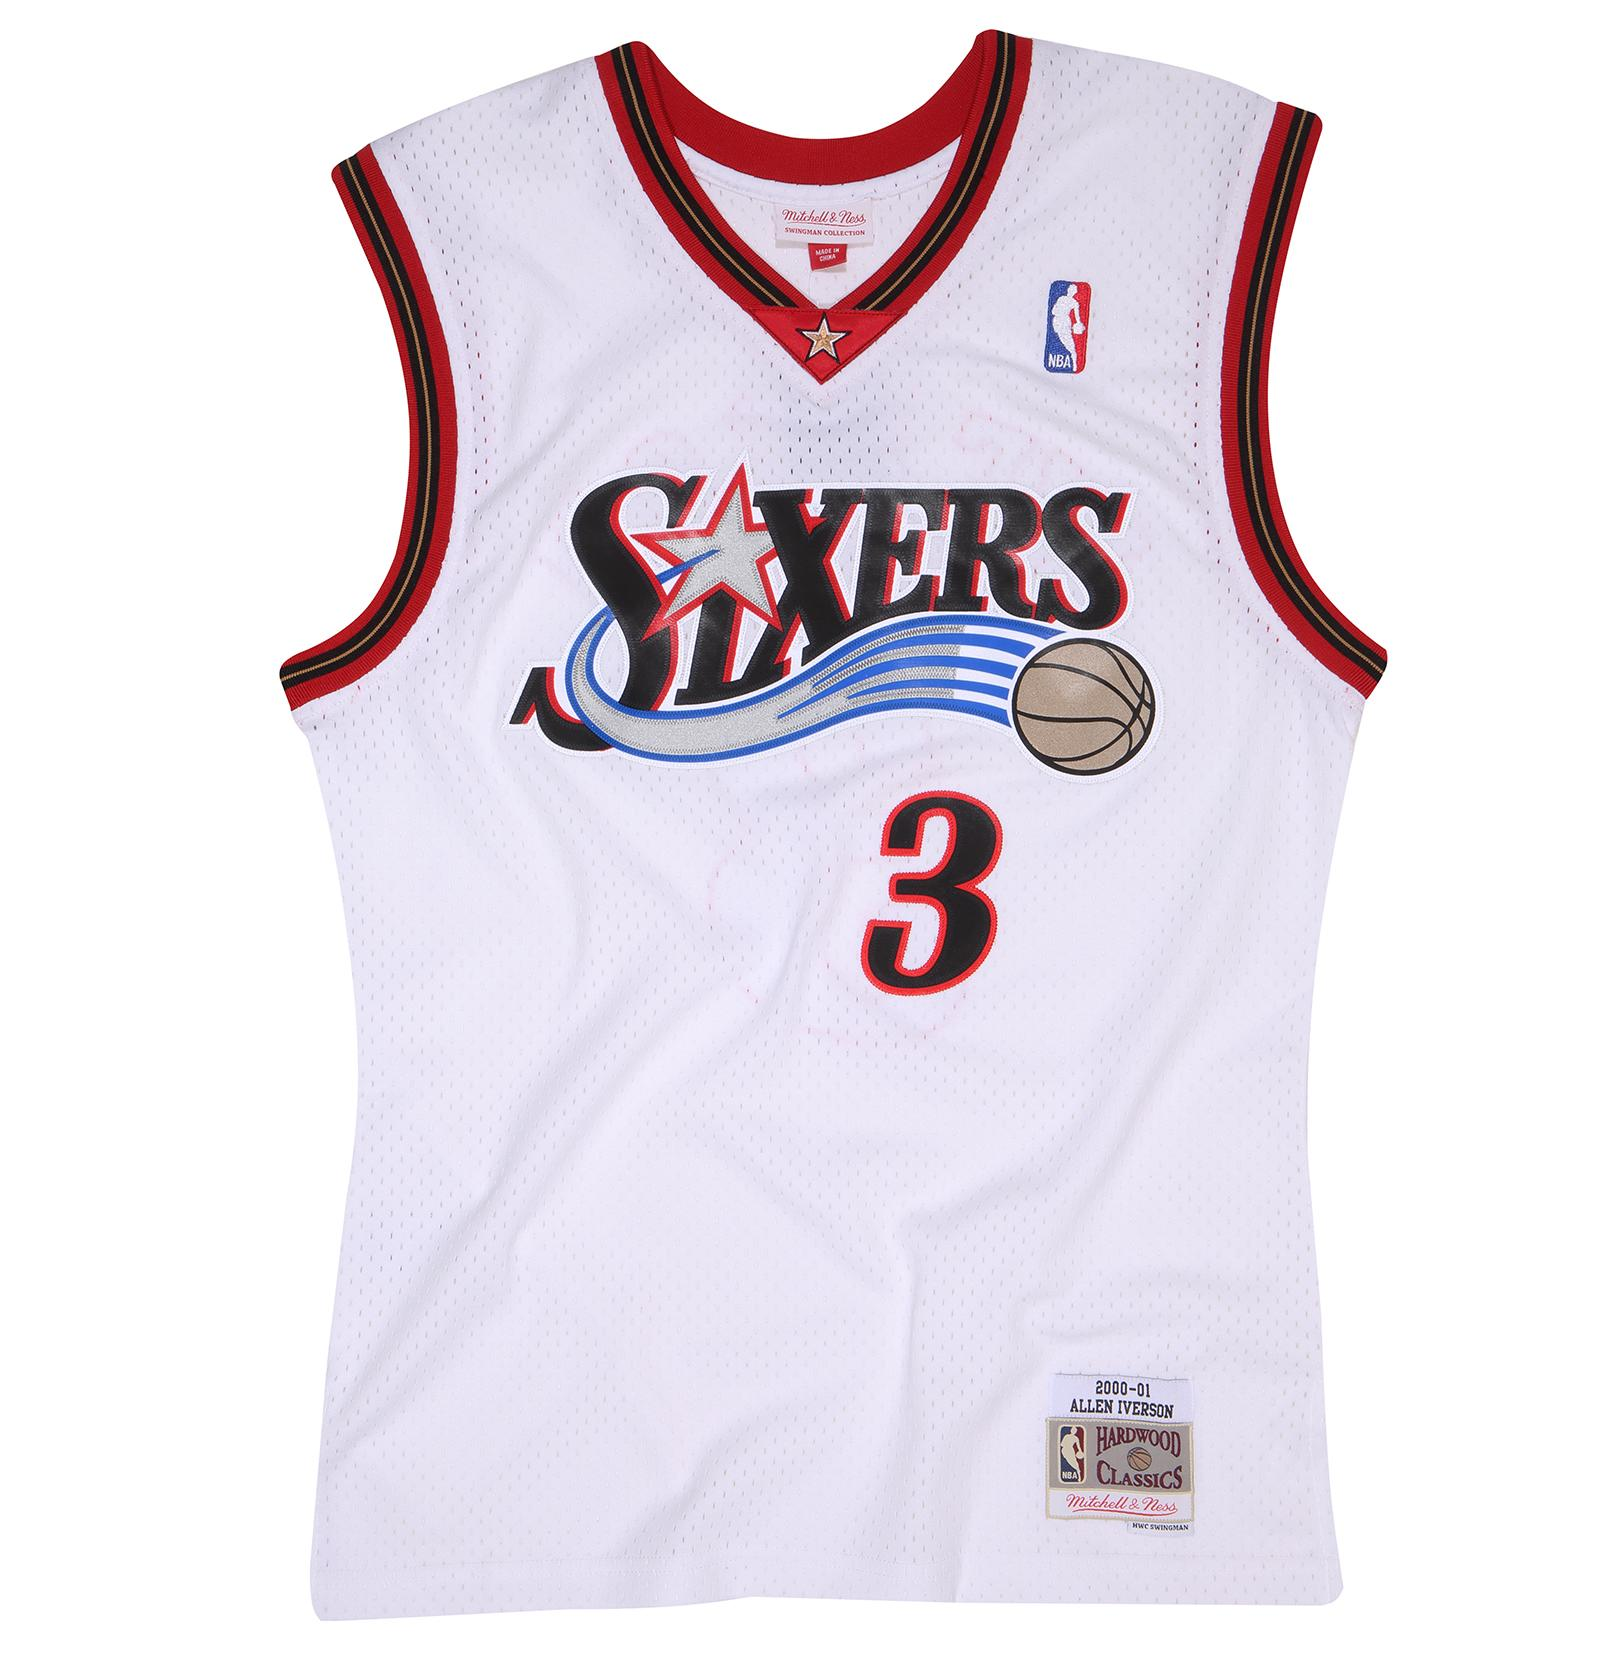 4e3faf34d ... Iverson 2000-2001 Home Swingman Jersey Our Price  £90.00 ...